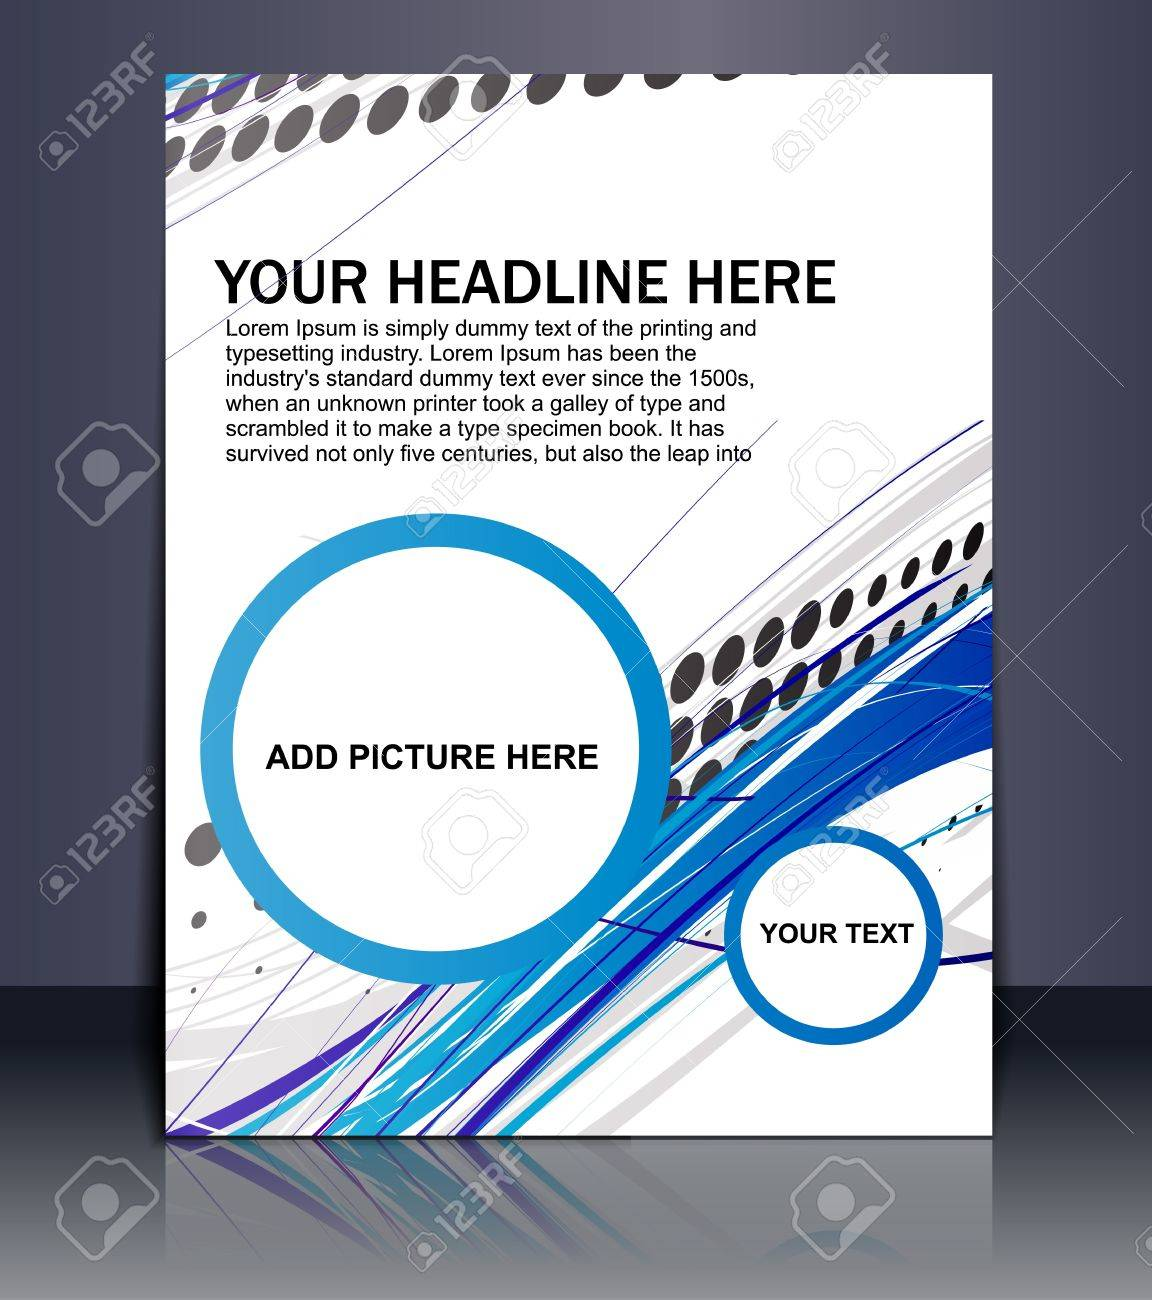 Presentation of Poster/flyer design content background. editable vector illustration Stock Vector - 10054954